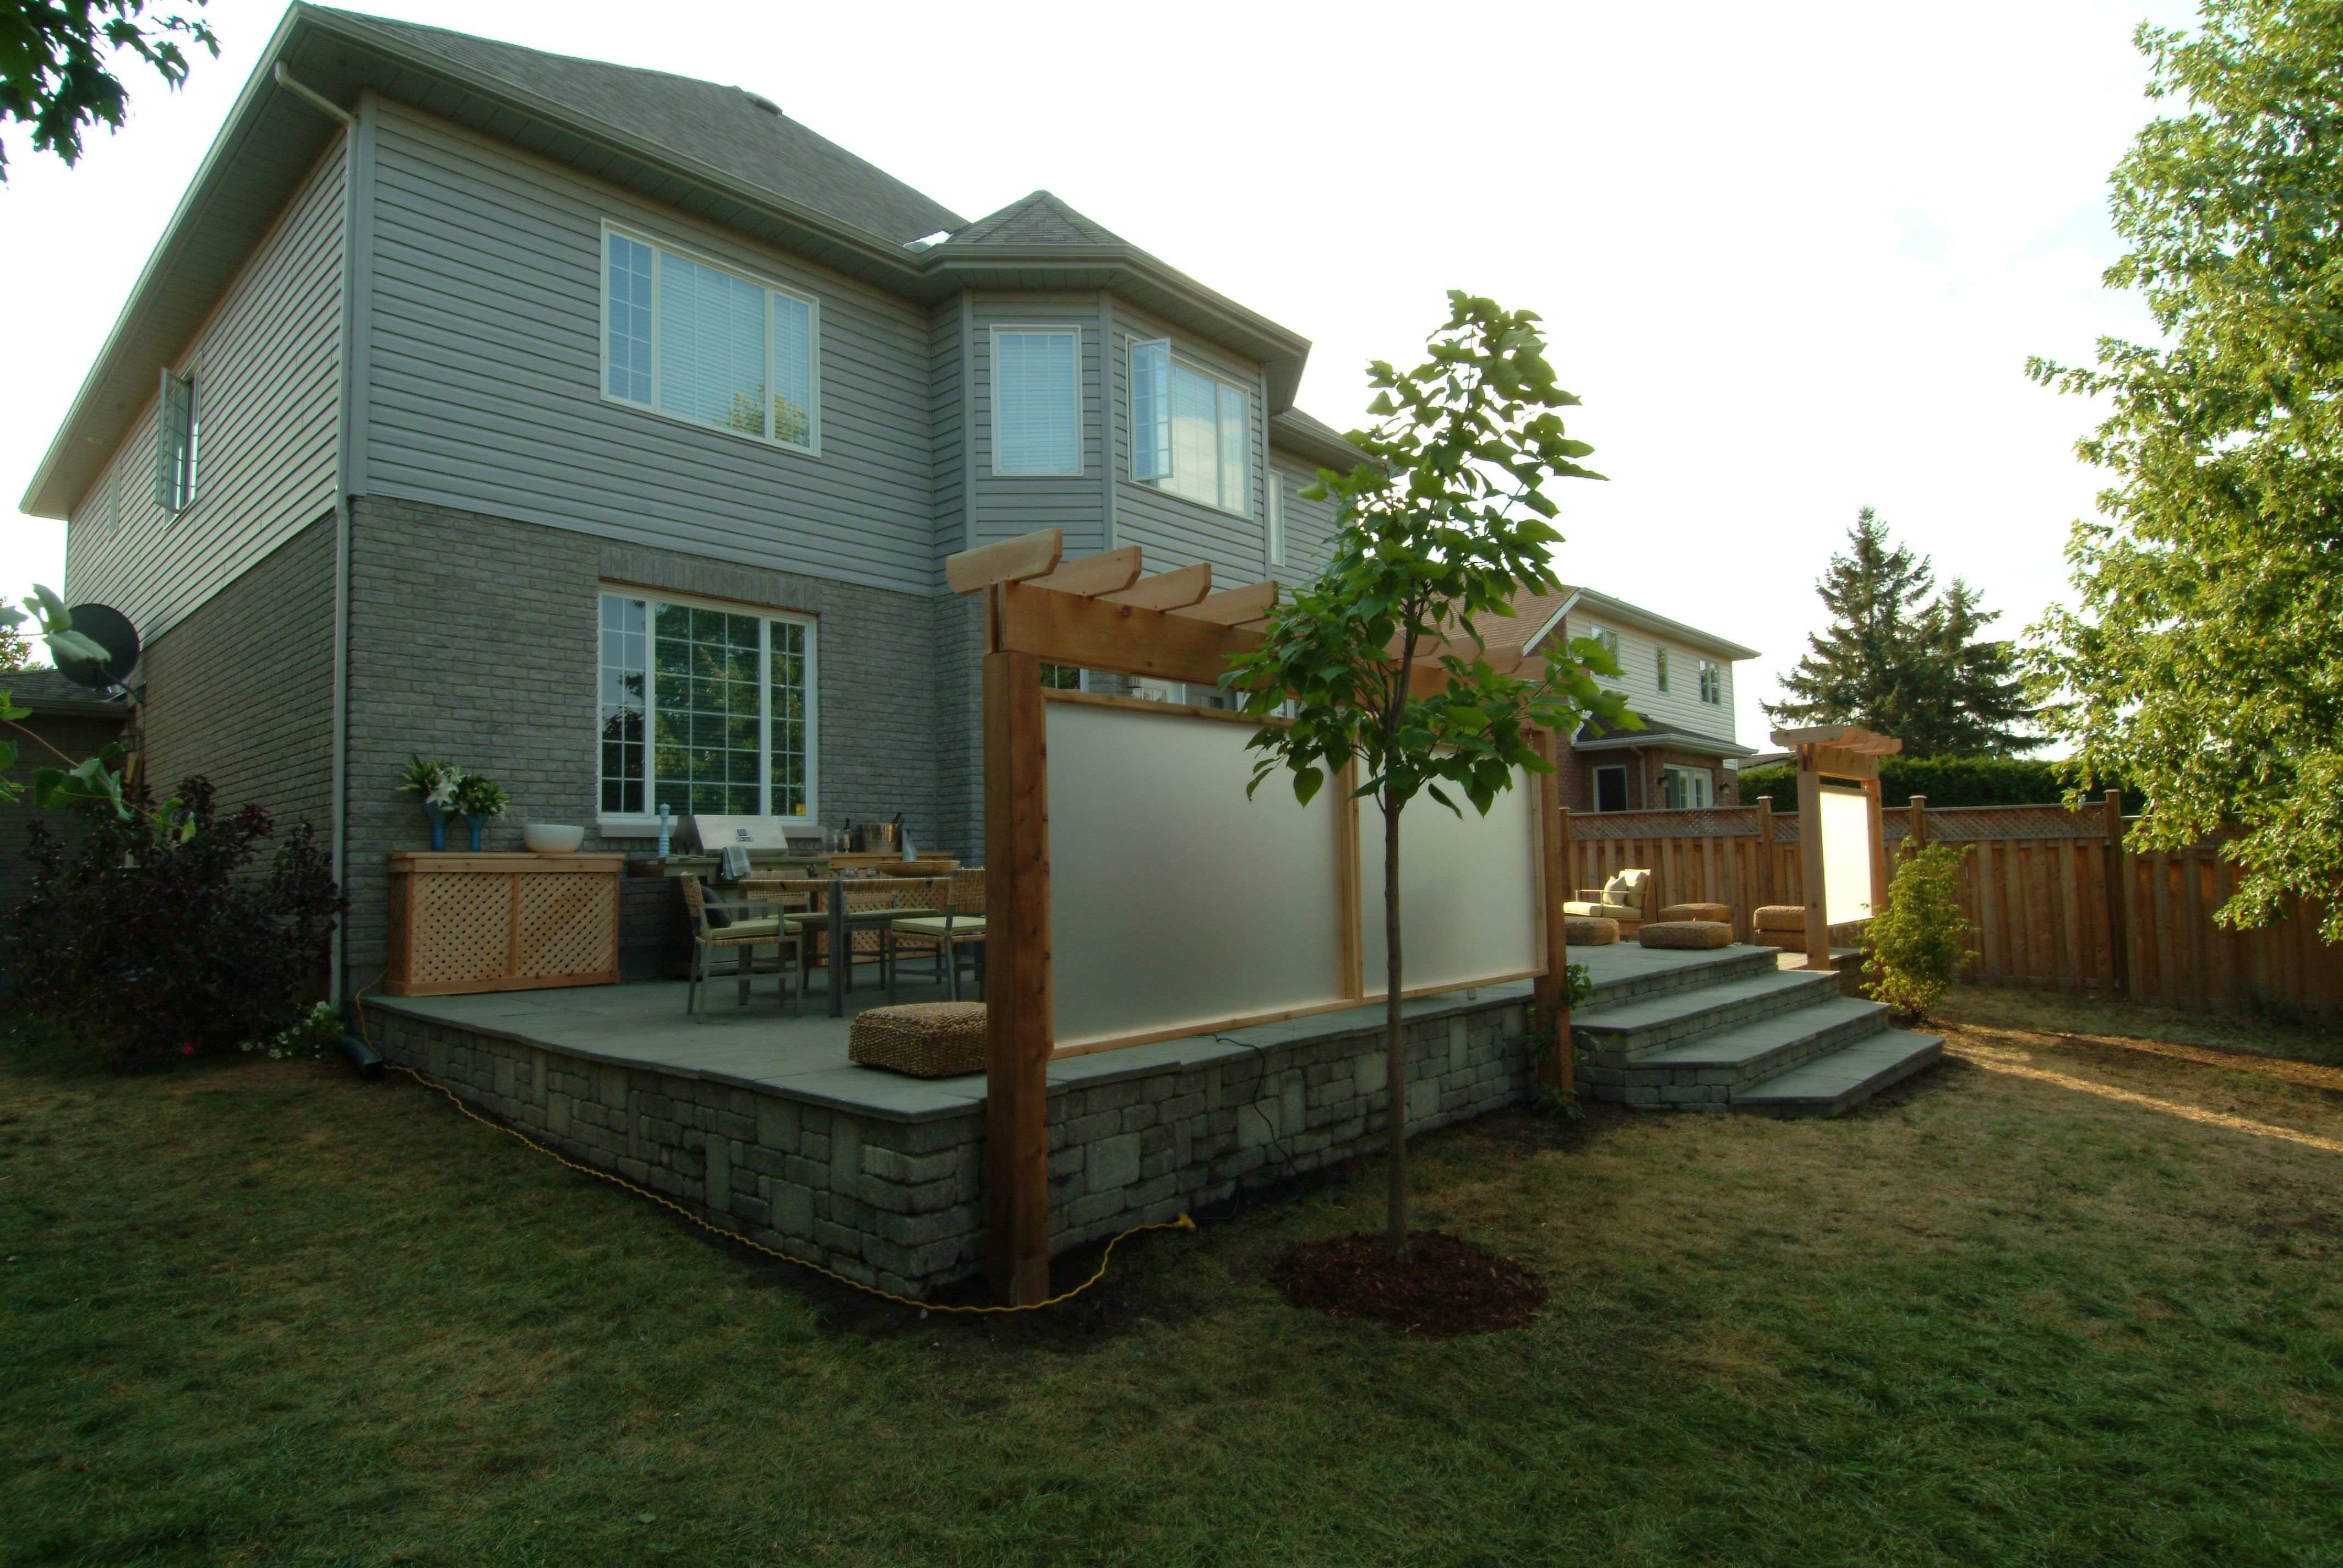 backyard raised patio ideas. Raised Patio With Retaining Wall Backyard Ideas O